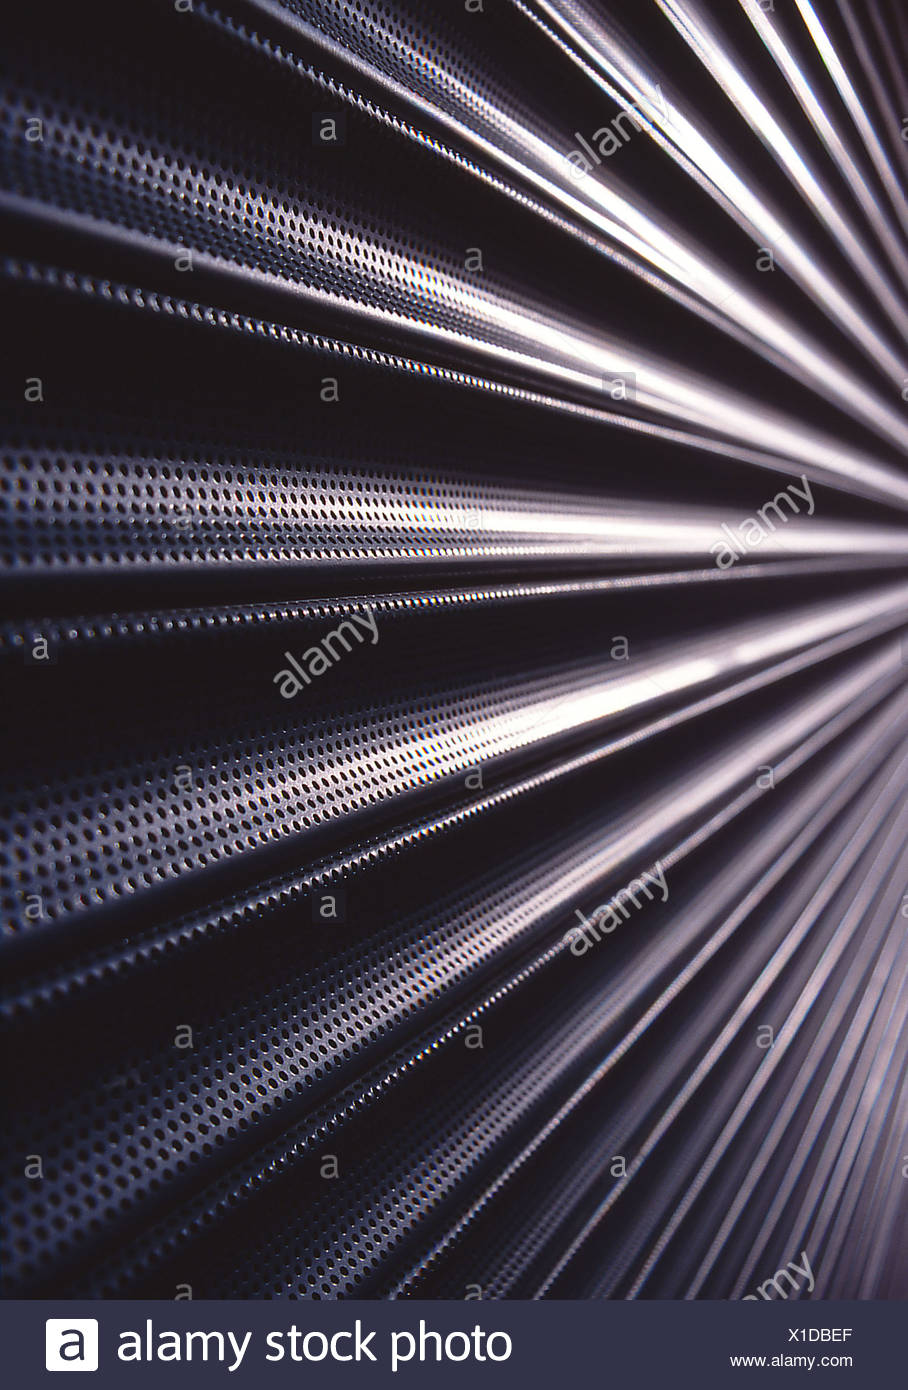 Close up of a shutter - Stock Image